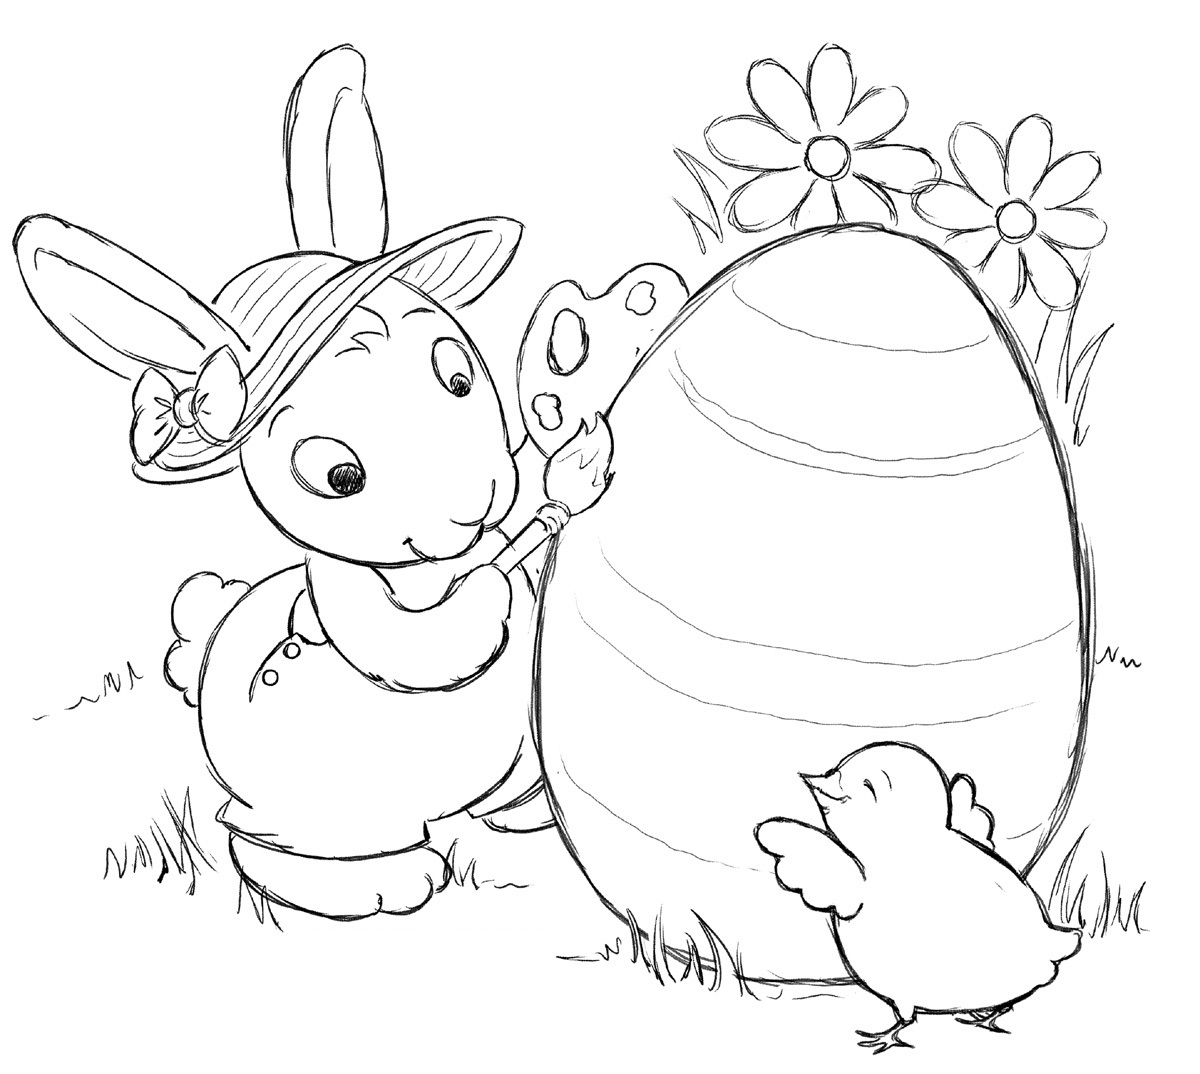 printable easter coloring pages for toddlers bddesigns 3 free coloring pages for easter kleurplaat toddlers easter for coloring printable pages